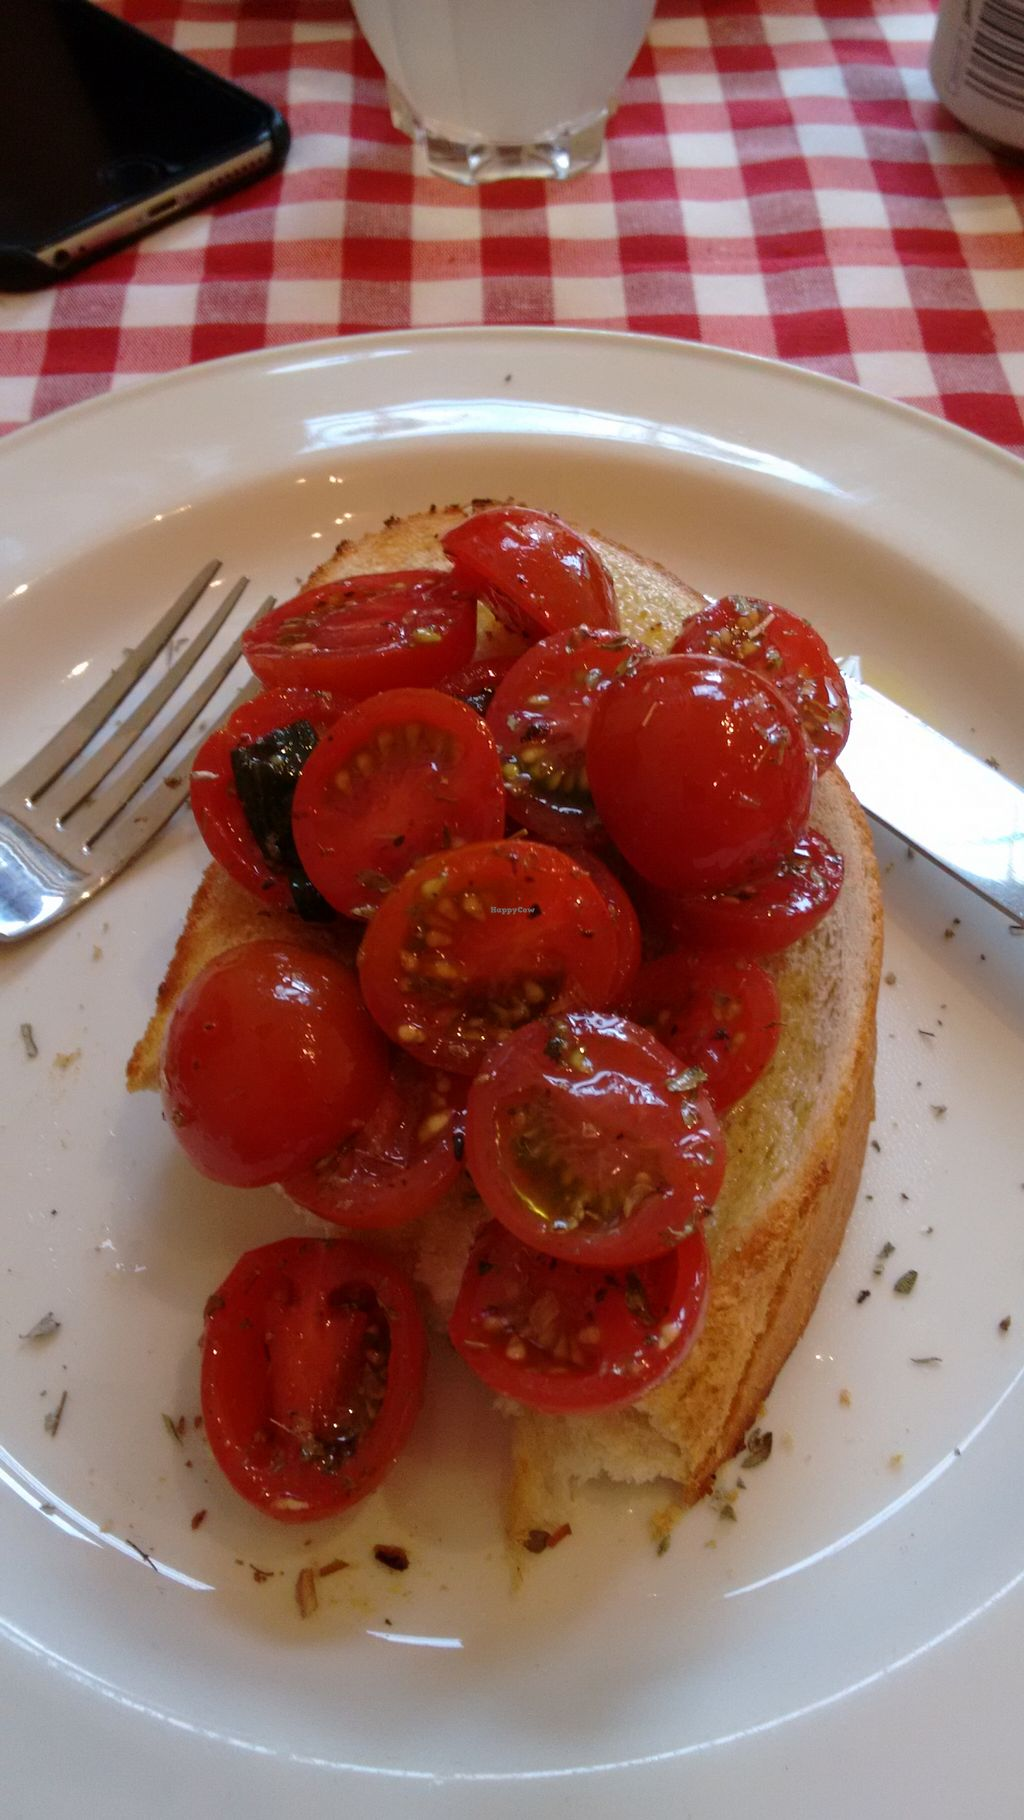 "Photo of NovaPizza Vegetarian Kitchen  by <a href=""/members/profile/craigmc"">craigmc</a> <br/>Bruschetta <br/> August 28, 2015  - <a href='/contact/abuse/image/61590/115546'>Report</a>"